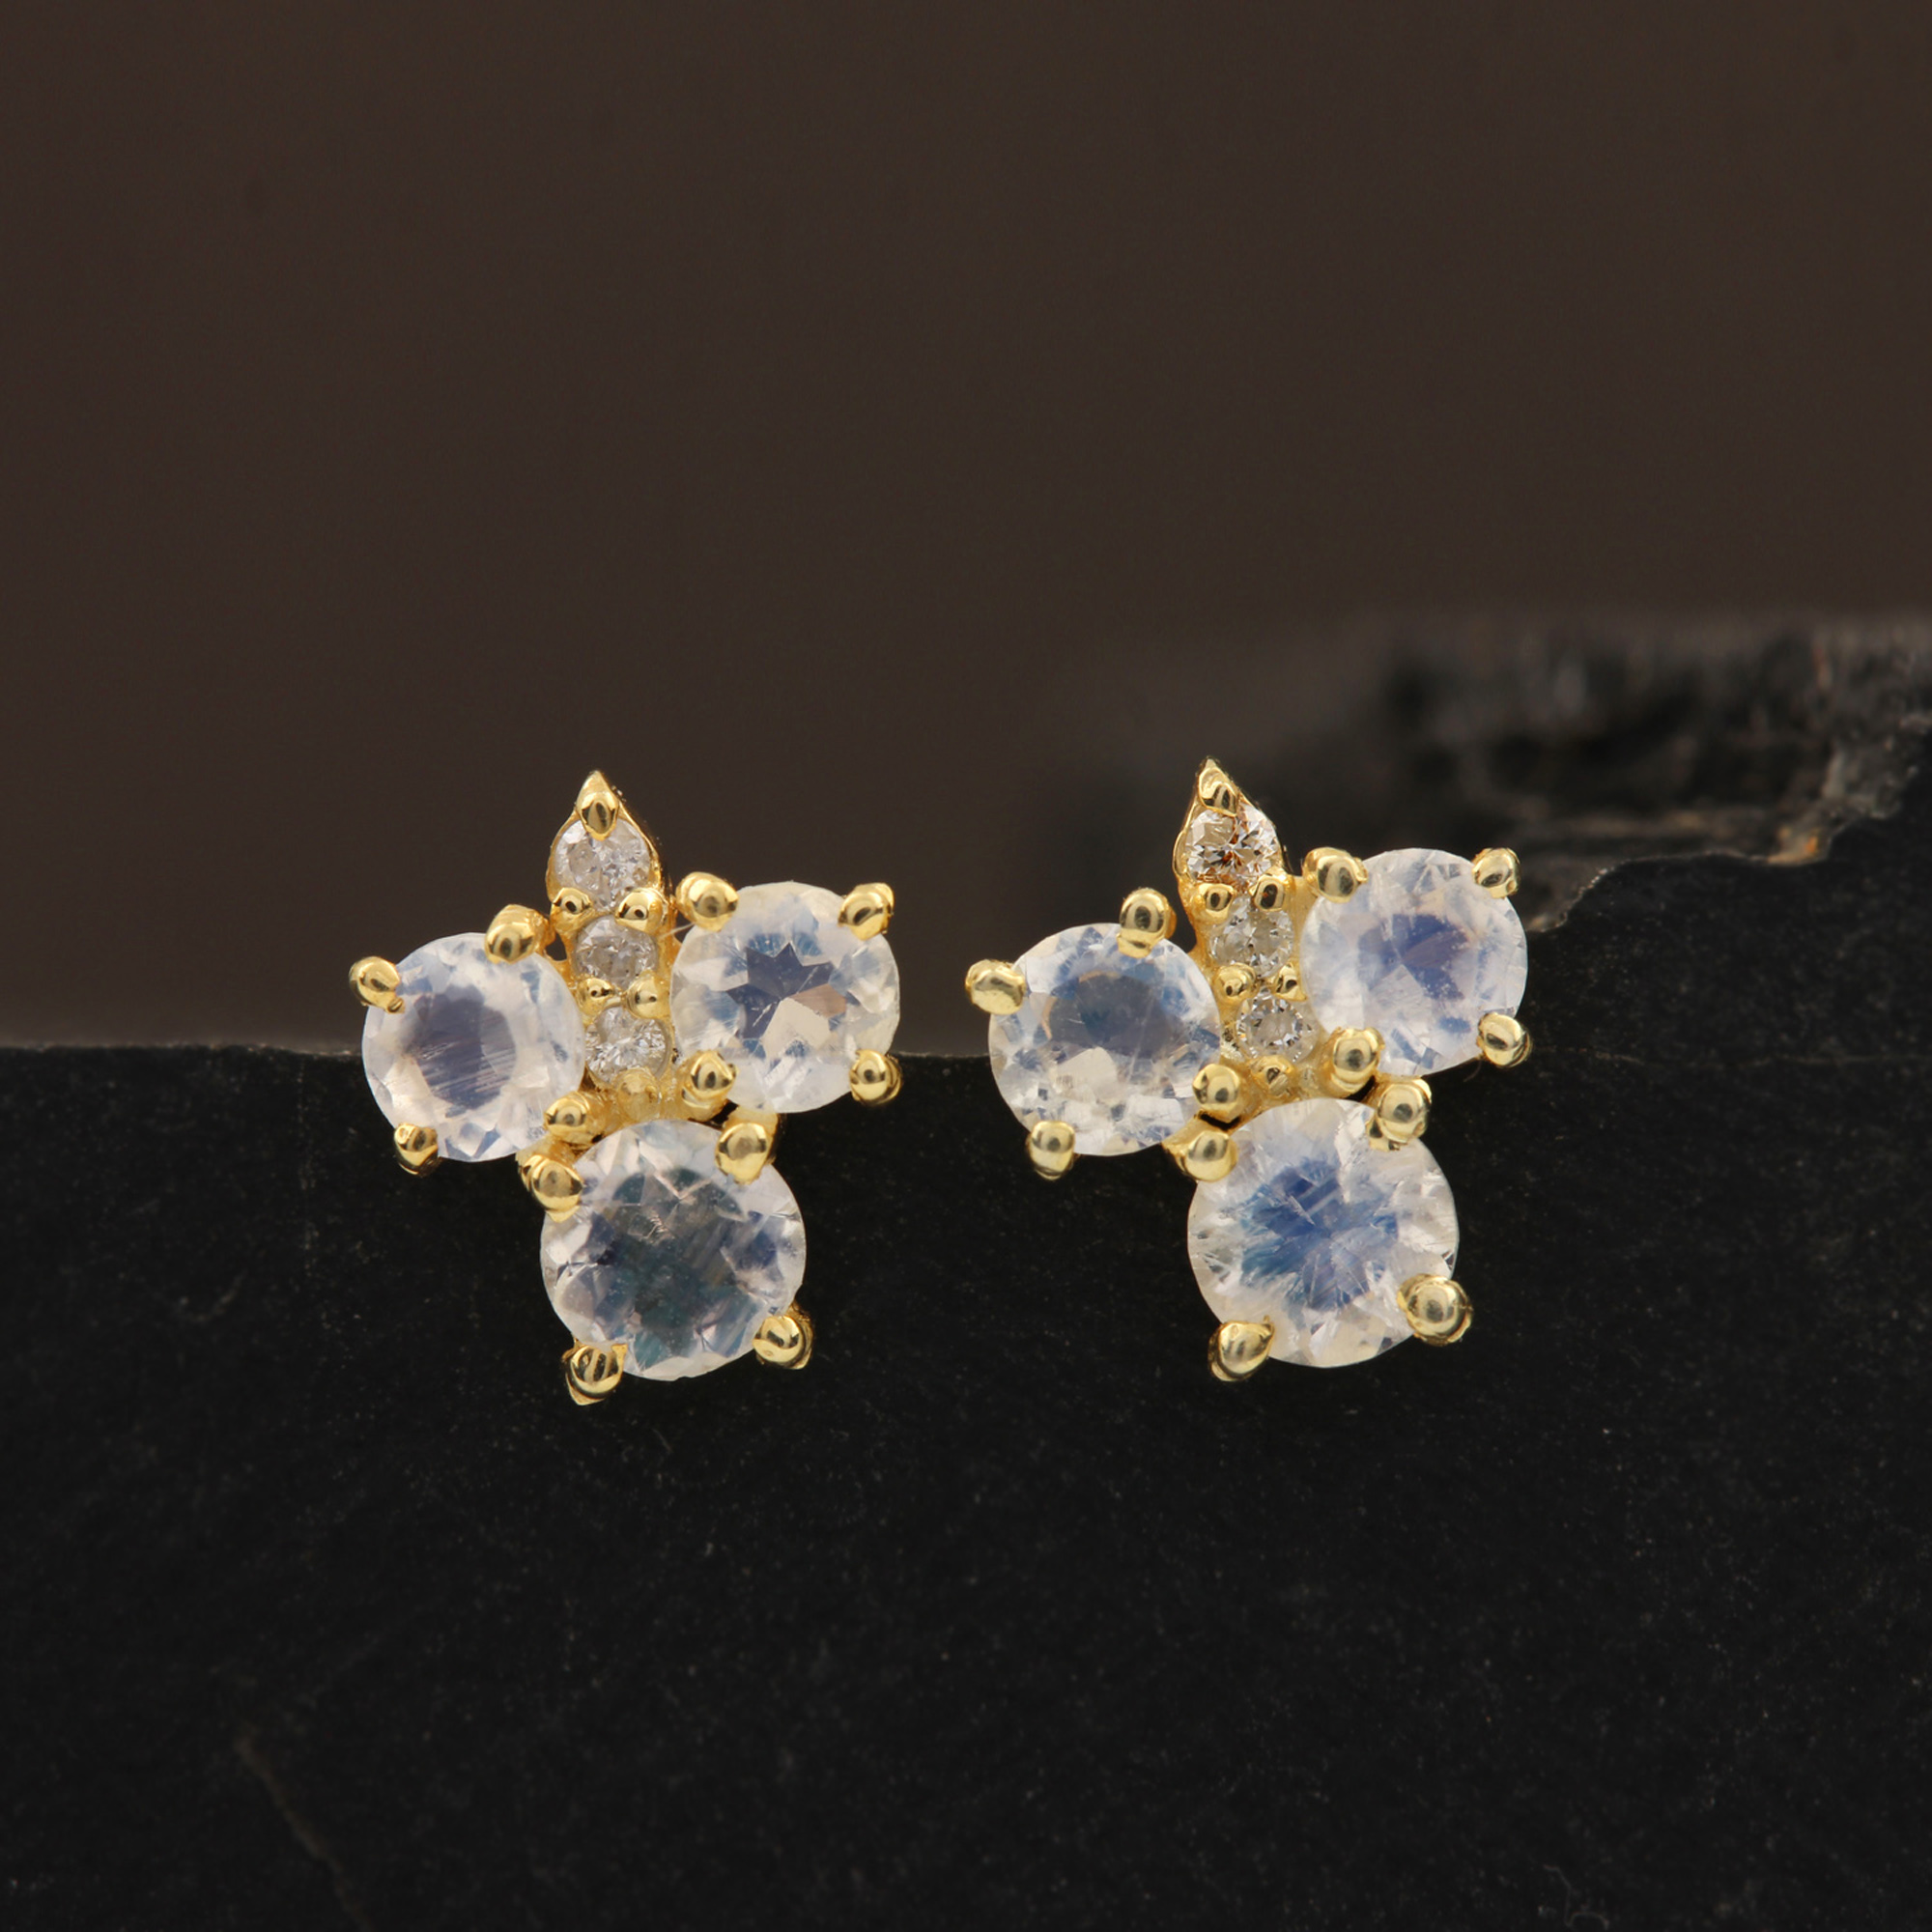 14k Solid Gold Stud Earrings Adorned With Diamond & 0.47ct Moonstone